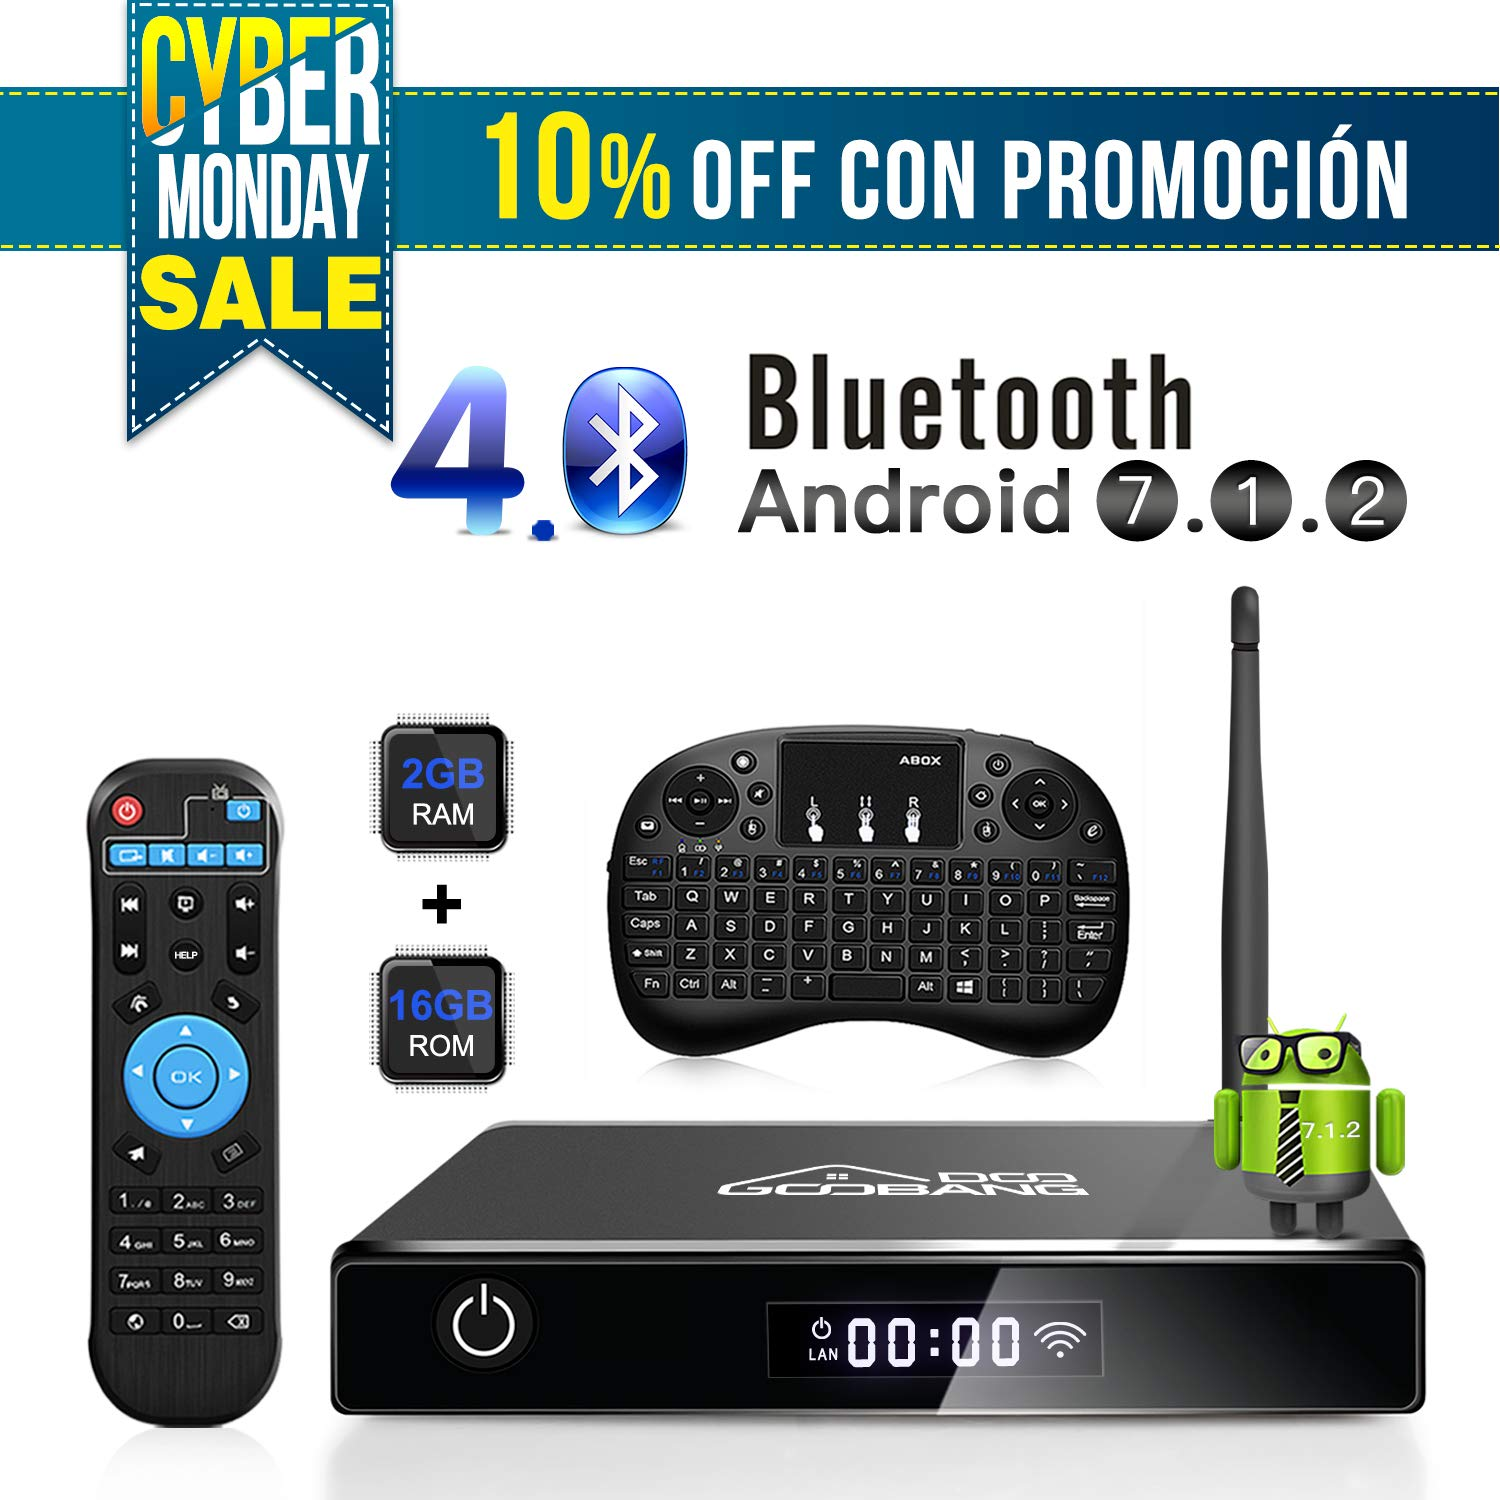 Android TV Box, GooBang Doo XB-III Smart TV Box Android 7.1 Quad Core 2GB RAM/16GB ROM Admite 4K 3D 2.4GHz WiFi Bluetooth con Mini Teclado Inalá mbrico ABOX